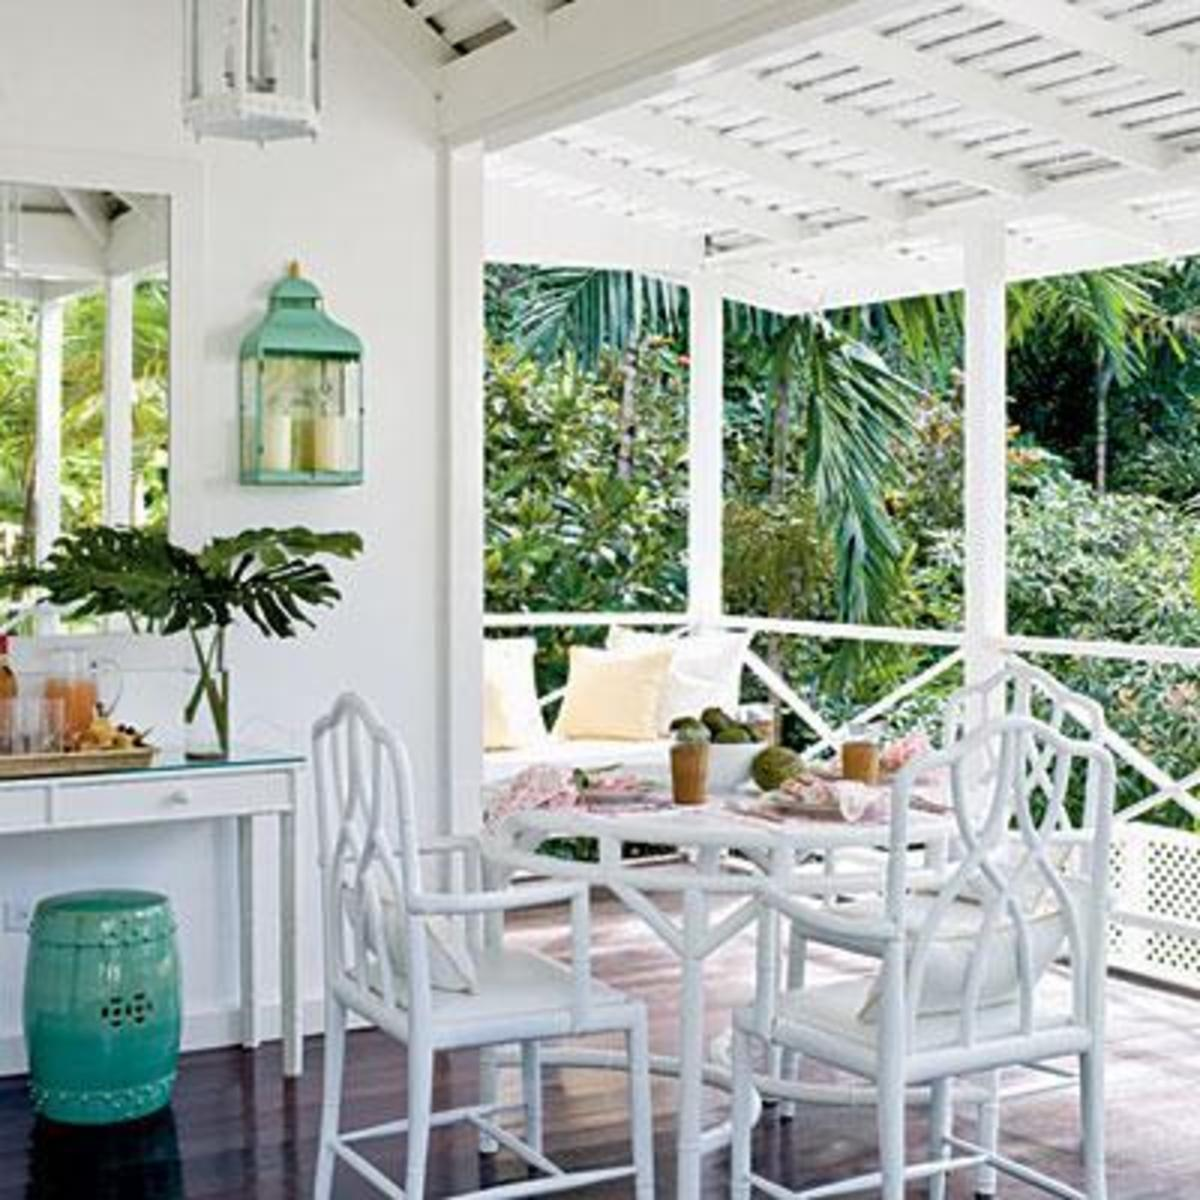 Porches, Verandas & Lanais That I Love - Great Design Ideas